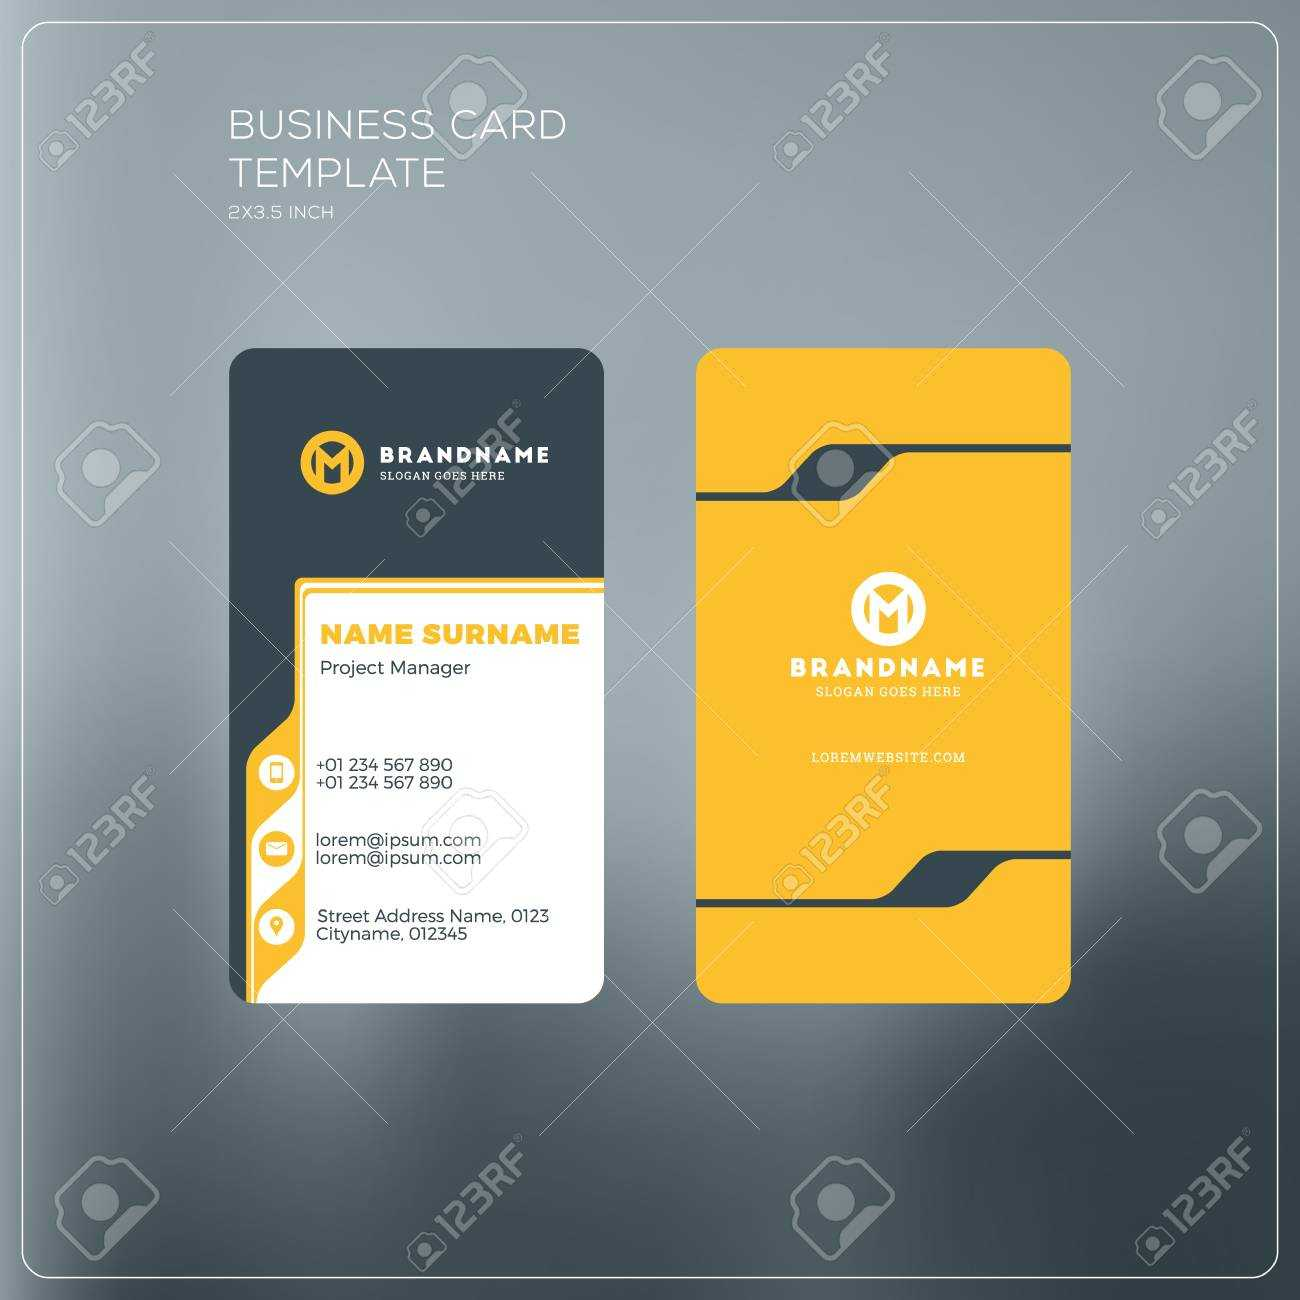 Personal Business Cards Template With Regard To Google Search Business Card Template